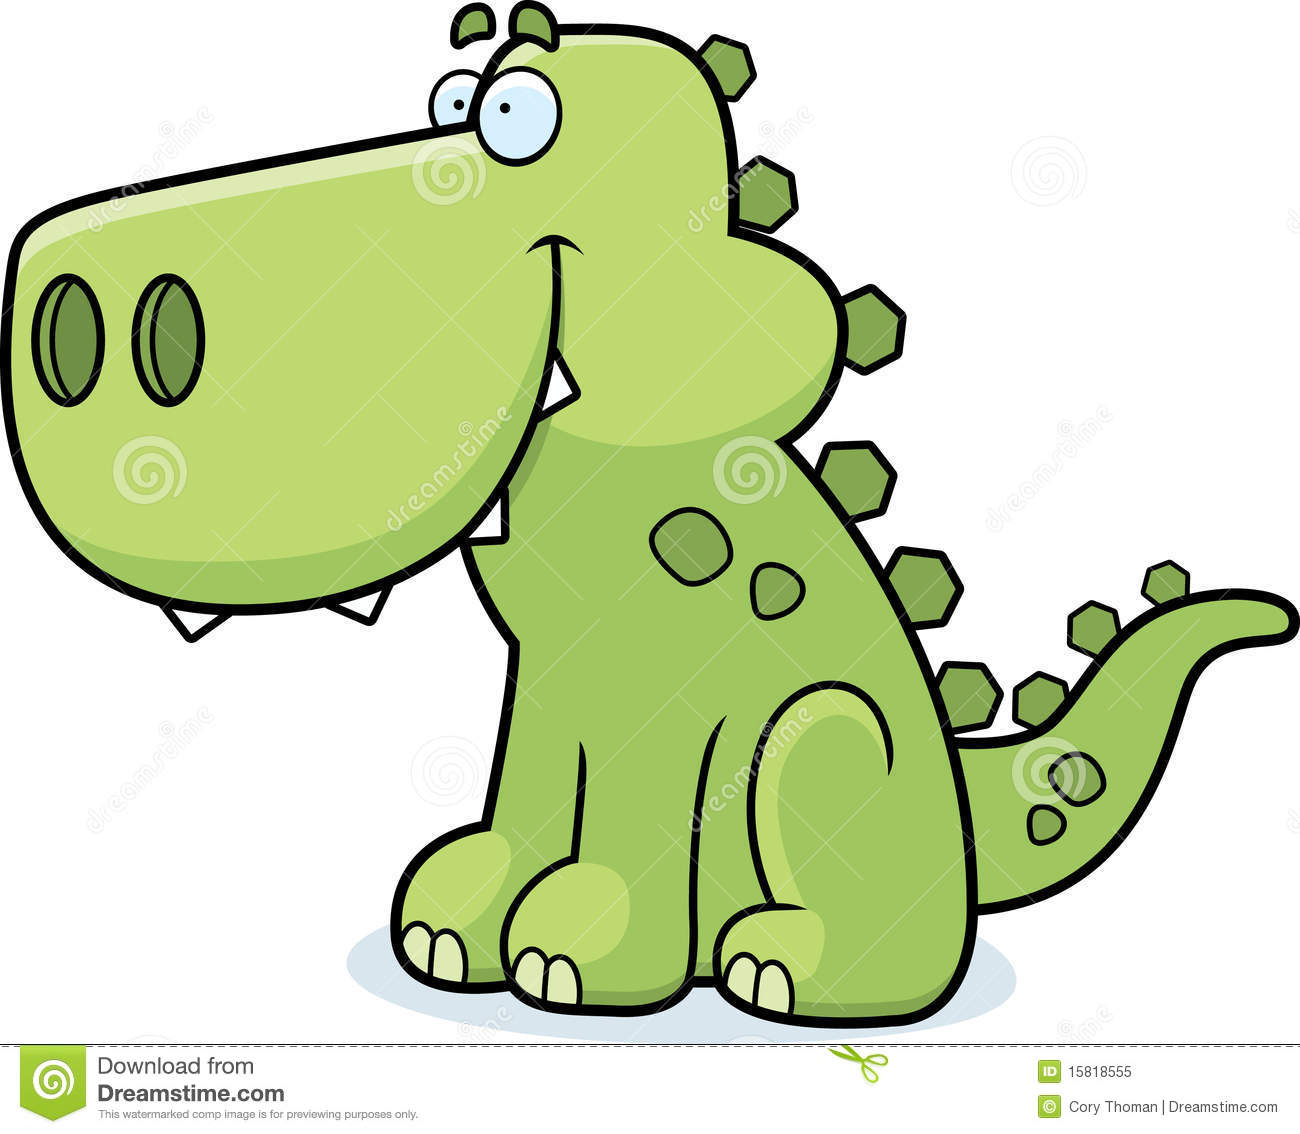 Happy cartoon dinosaur sitting and smiling